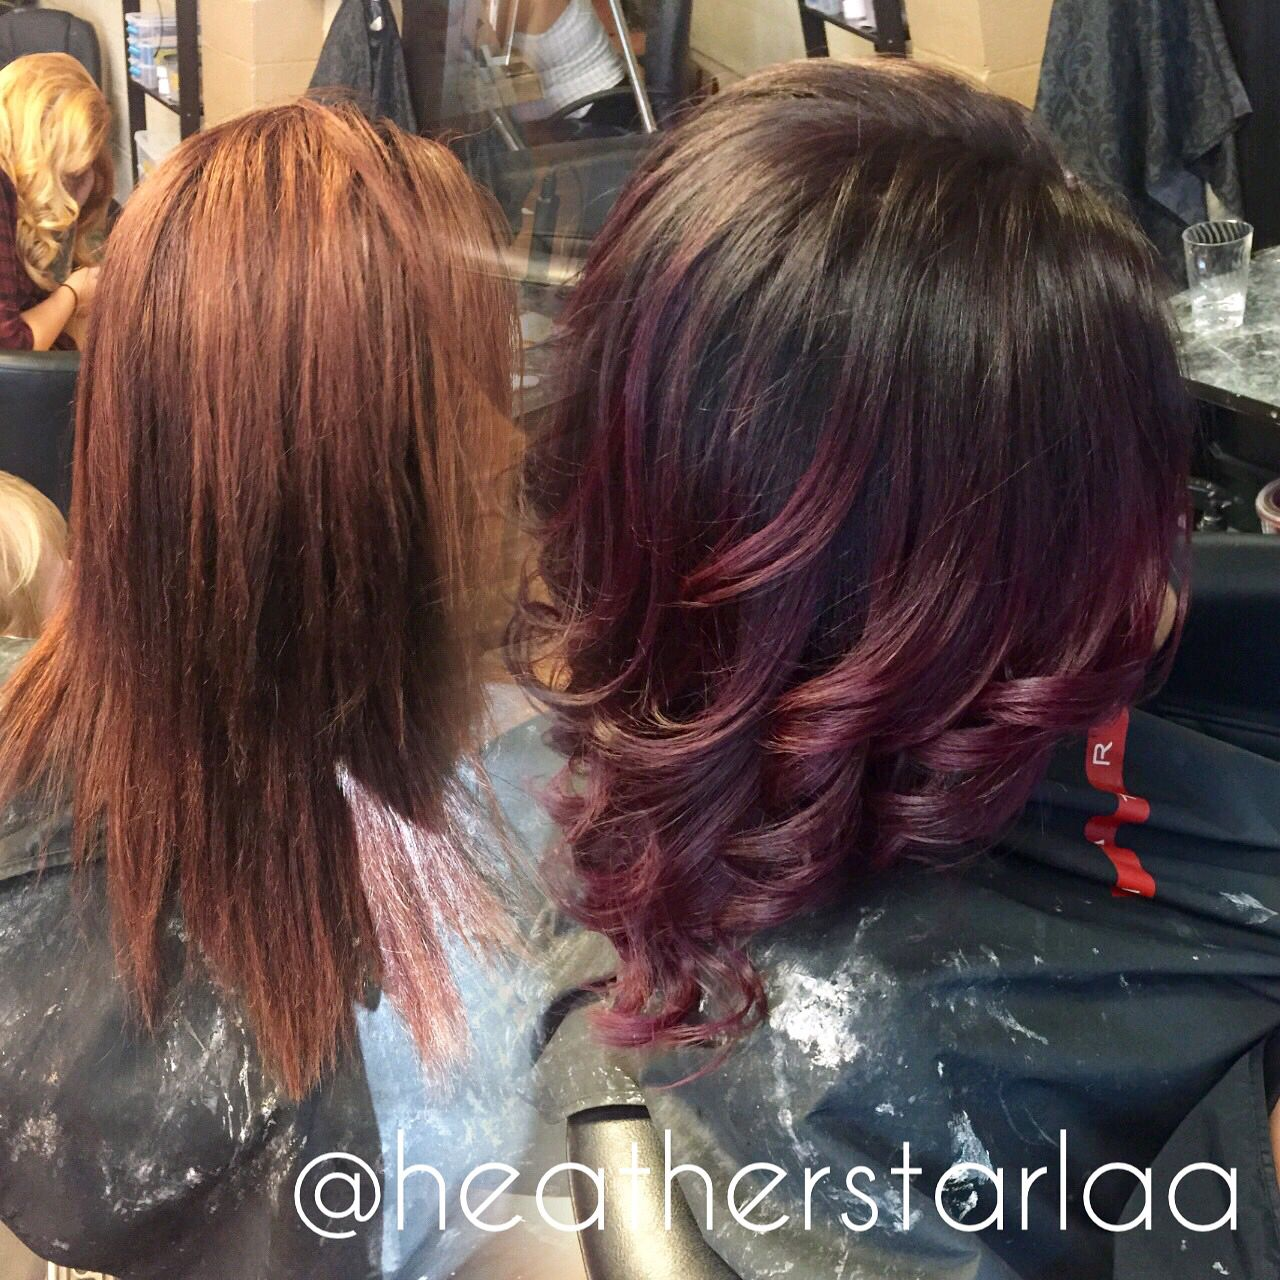 Dark Brown To Burgundy Balayage Ombre Balayage Ombre Burgundy Hair Curled Hair Red Violet H Medium Length Hair Styles Medium Hair Styles Burgundy Balayage